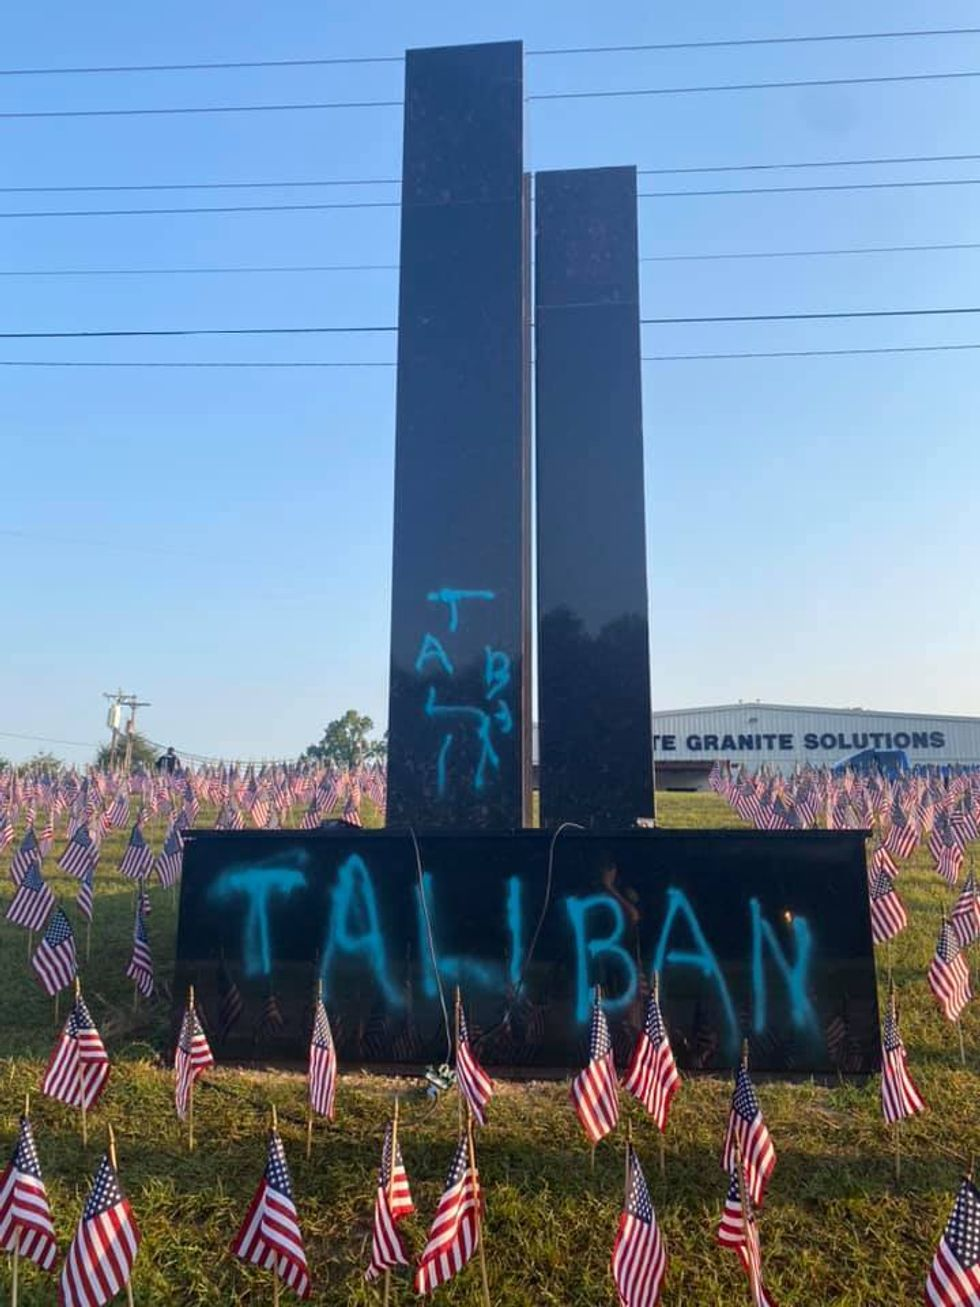 Vandal who spray-painted 'Taliban' on 9/11 memorial was caught on video, South Carolina police say